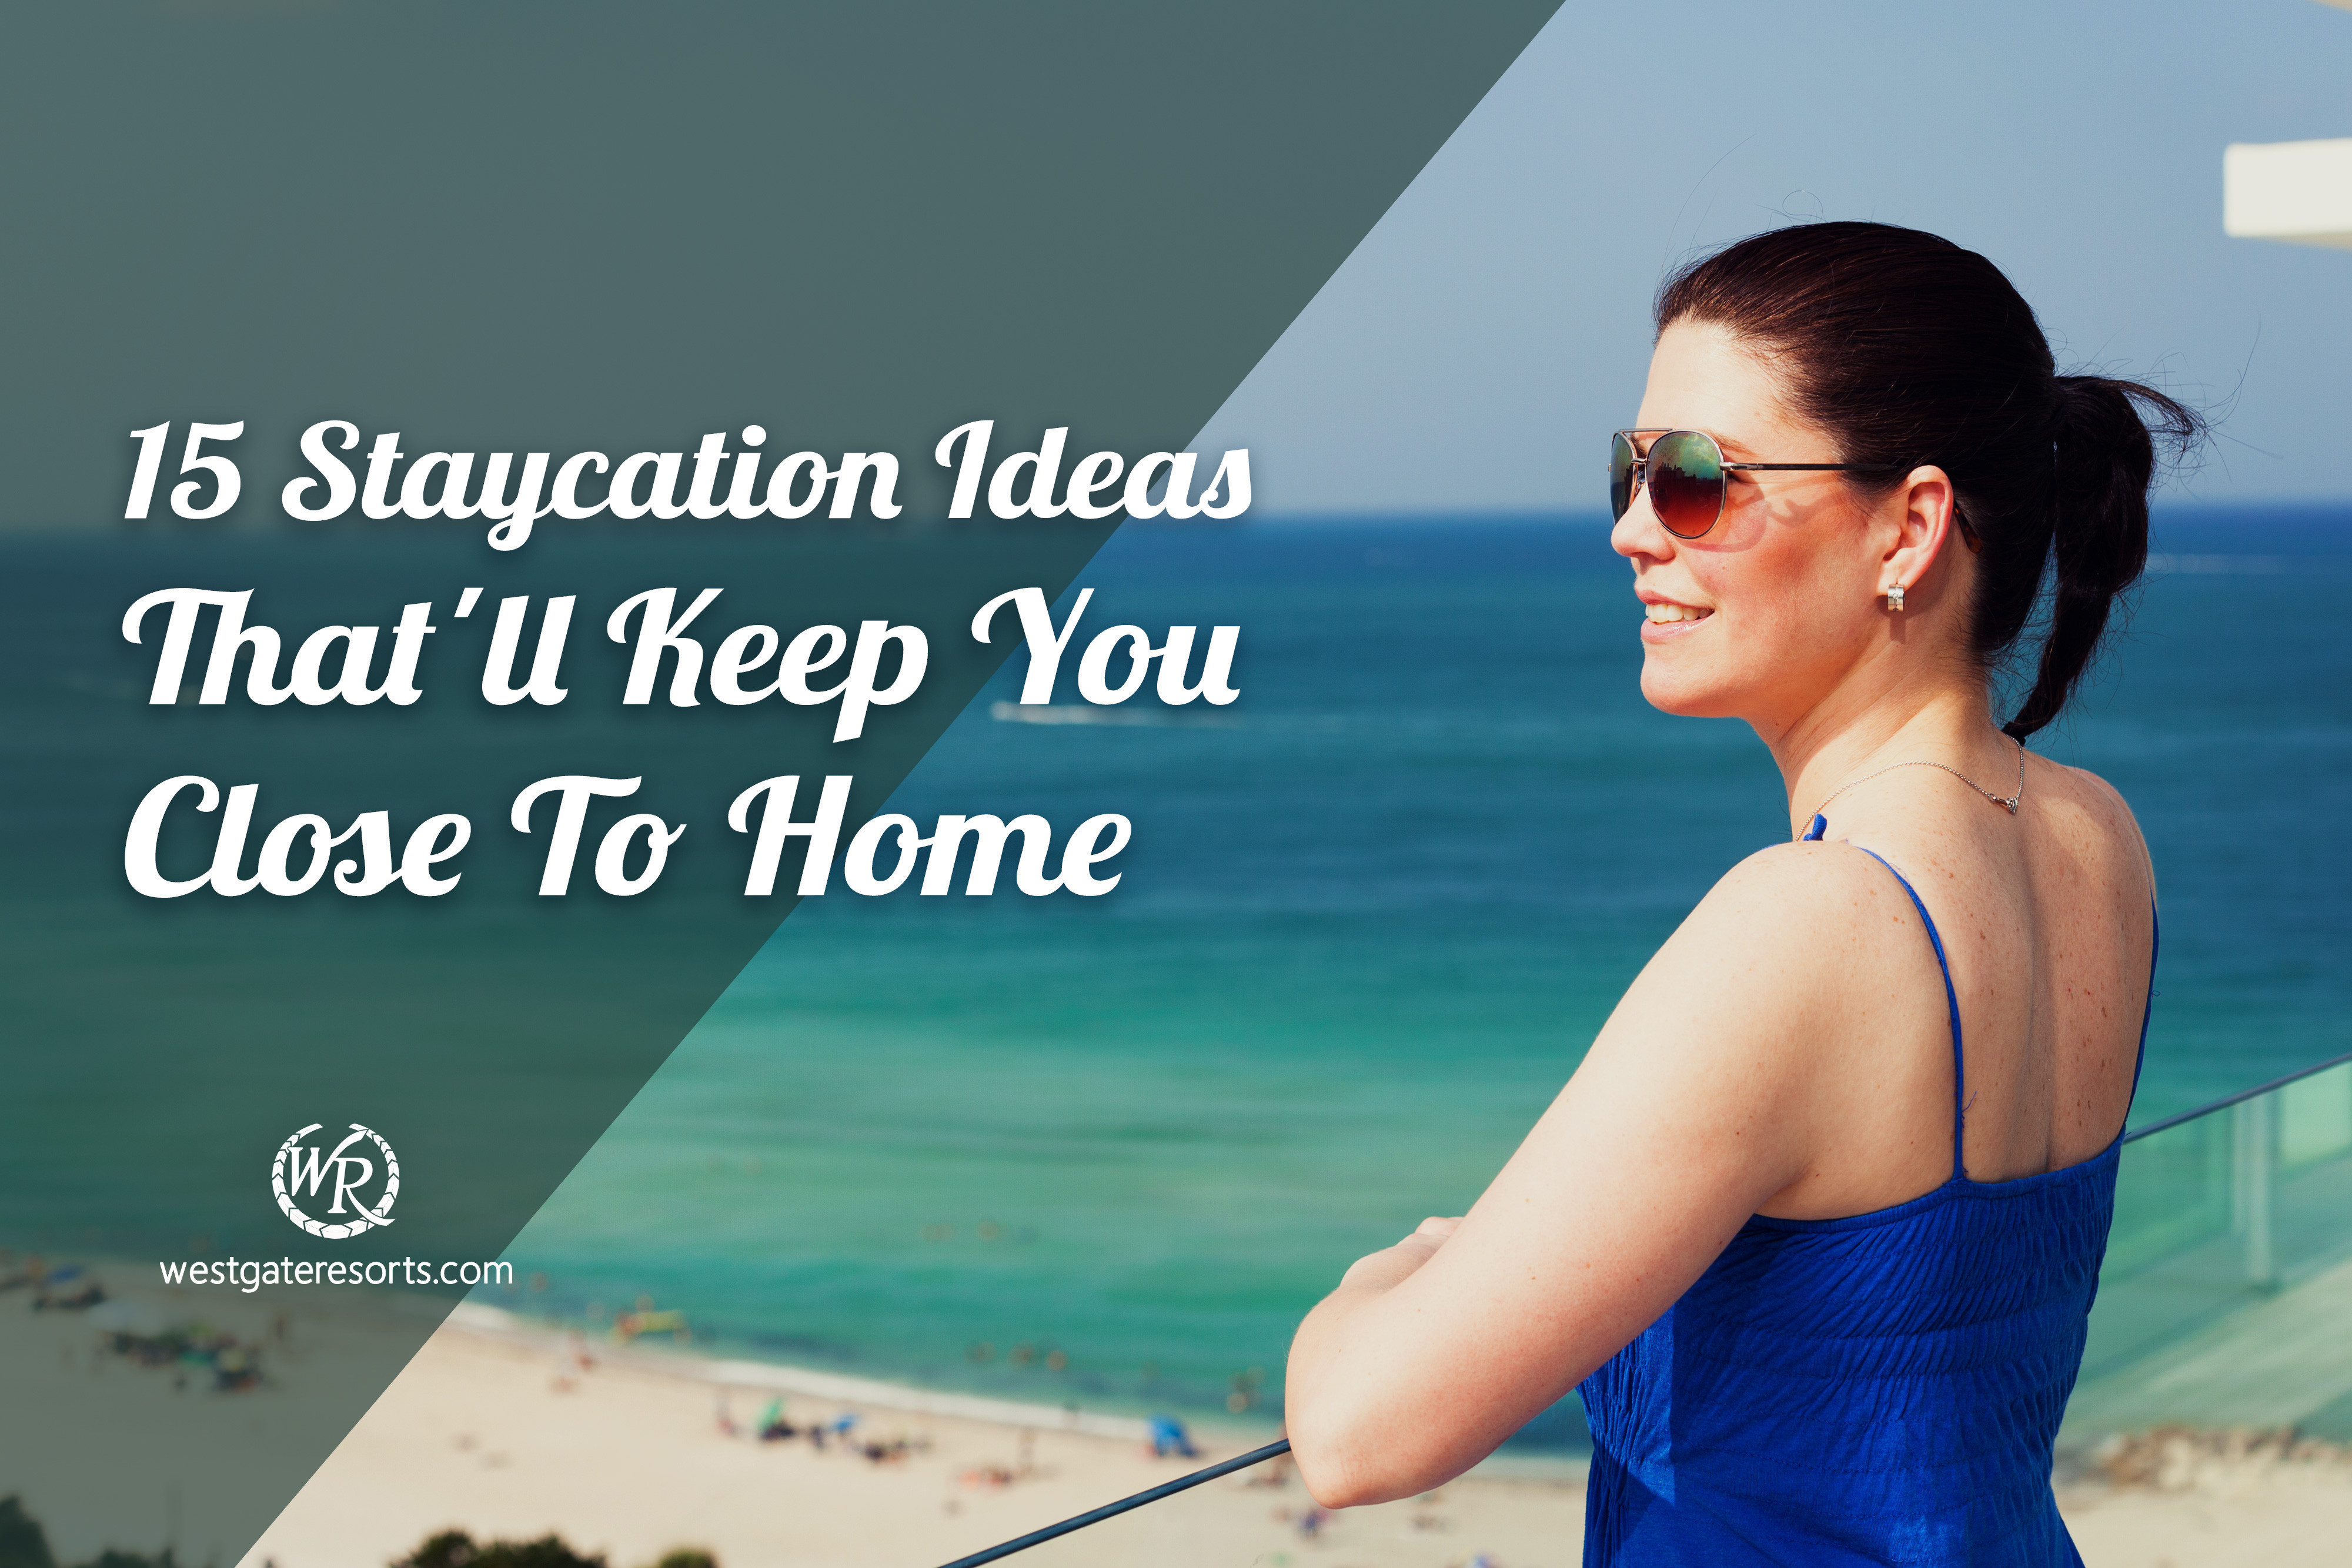 10 Staycation Ideas That'll Keep You Close To Home